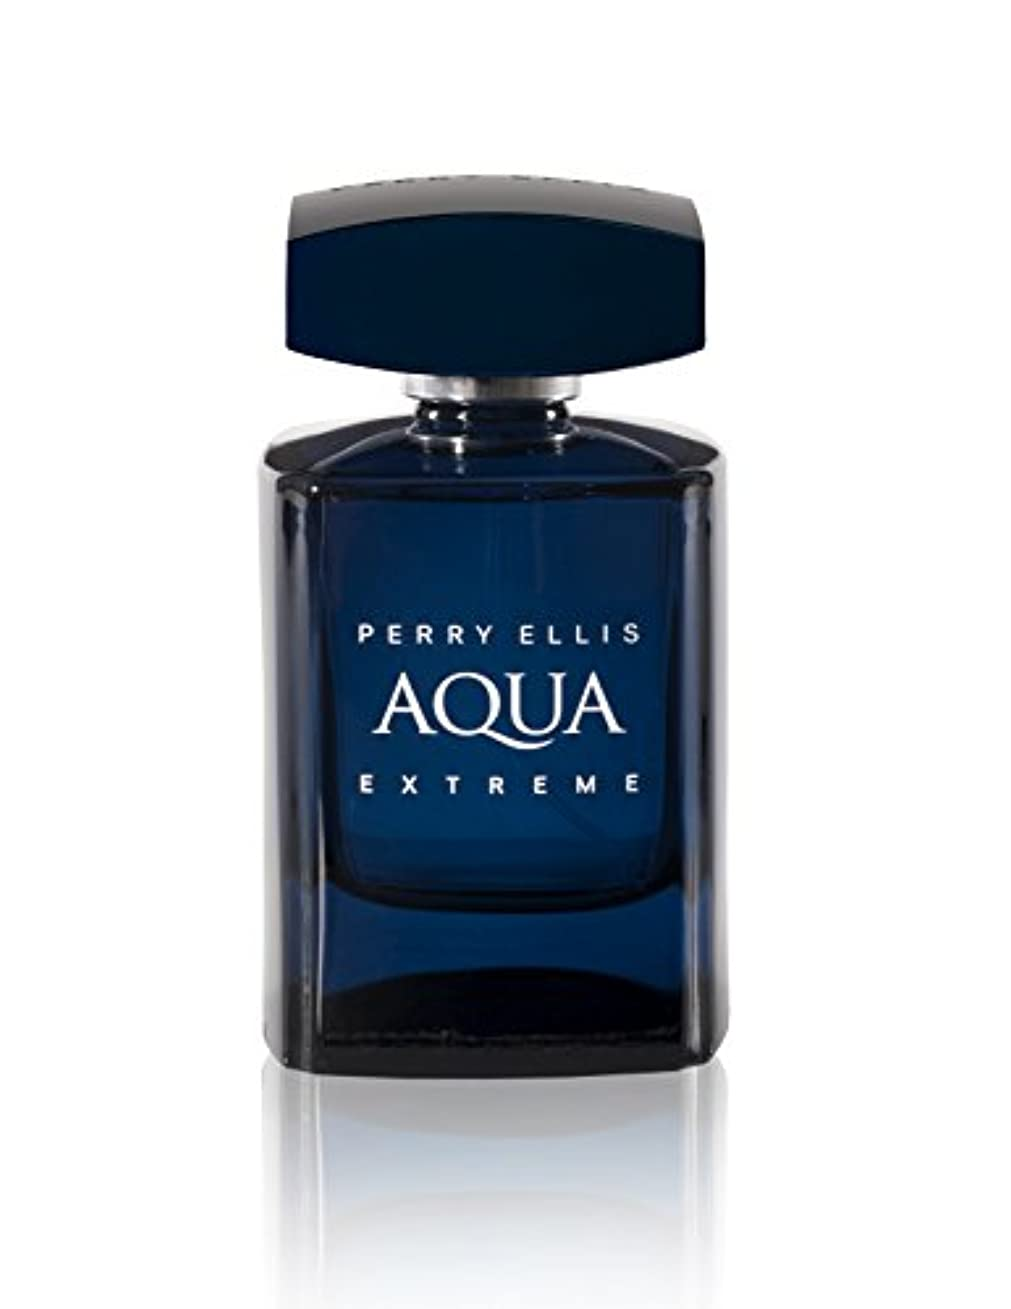 工業化する十億水を飲むPerry Ellis Aqua Extreme 100ml/3.4oz Eau de Toilette Spray EDT Cologne for Men